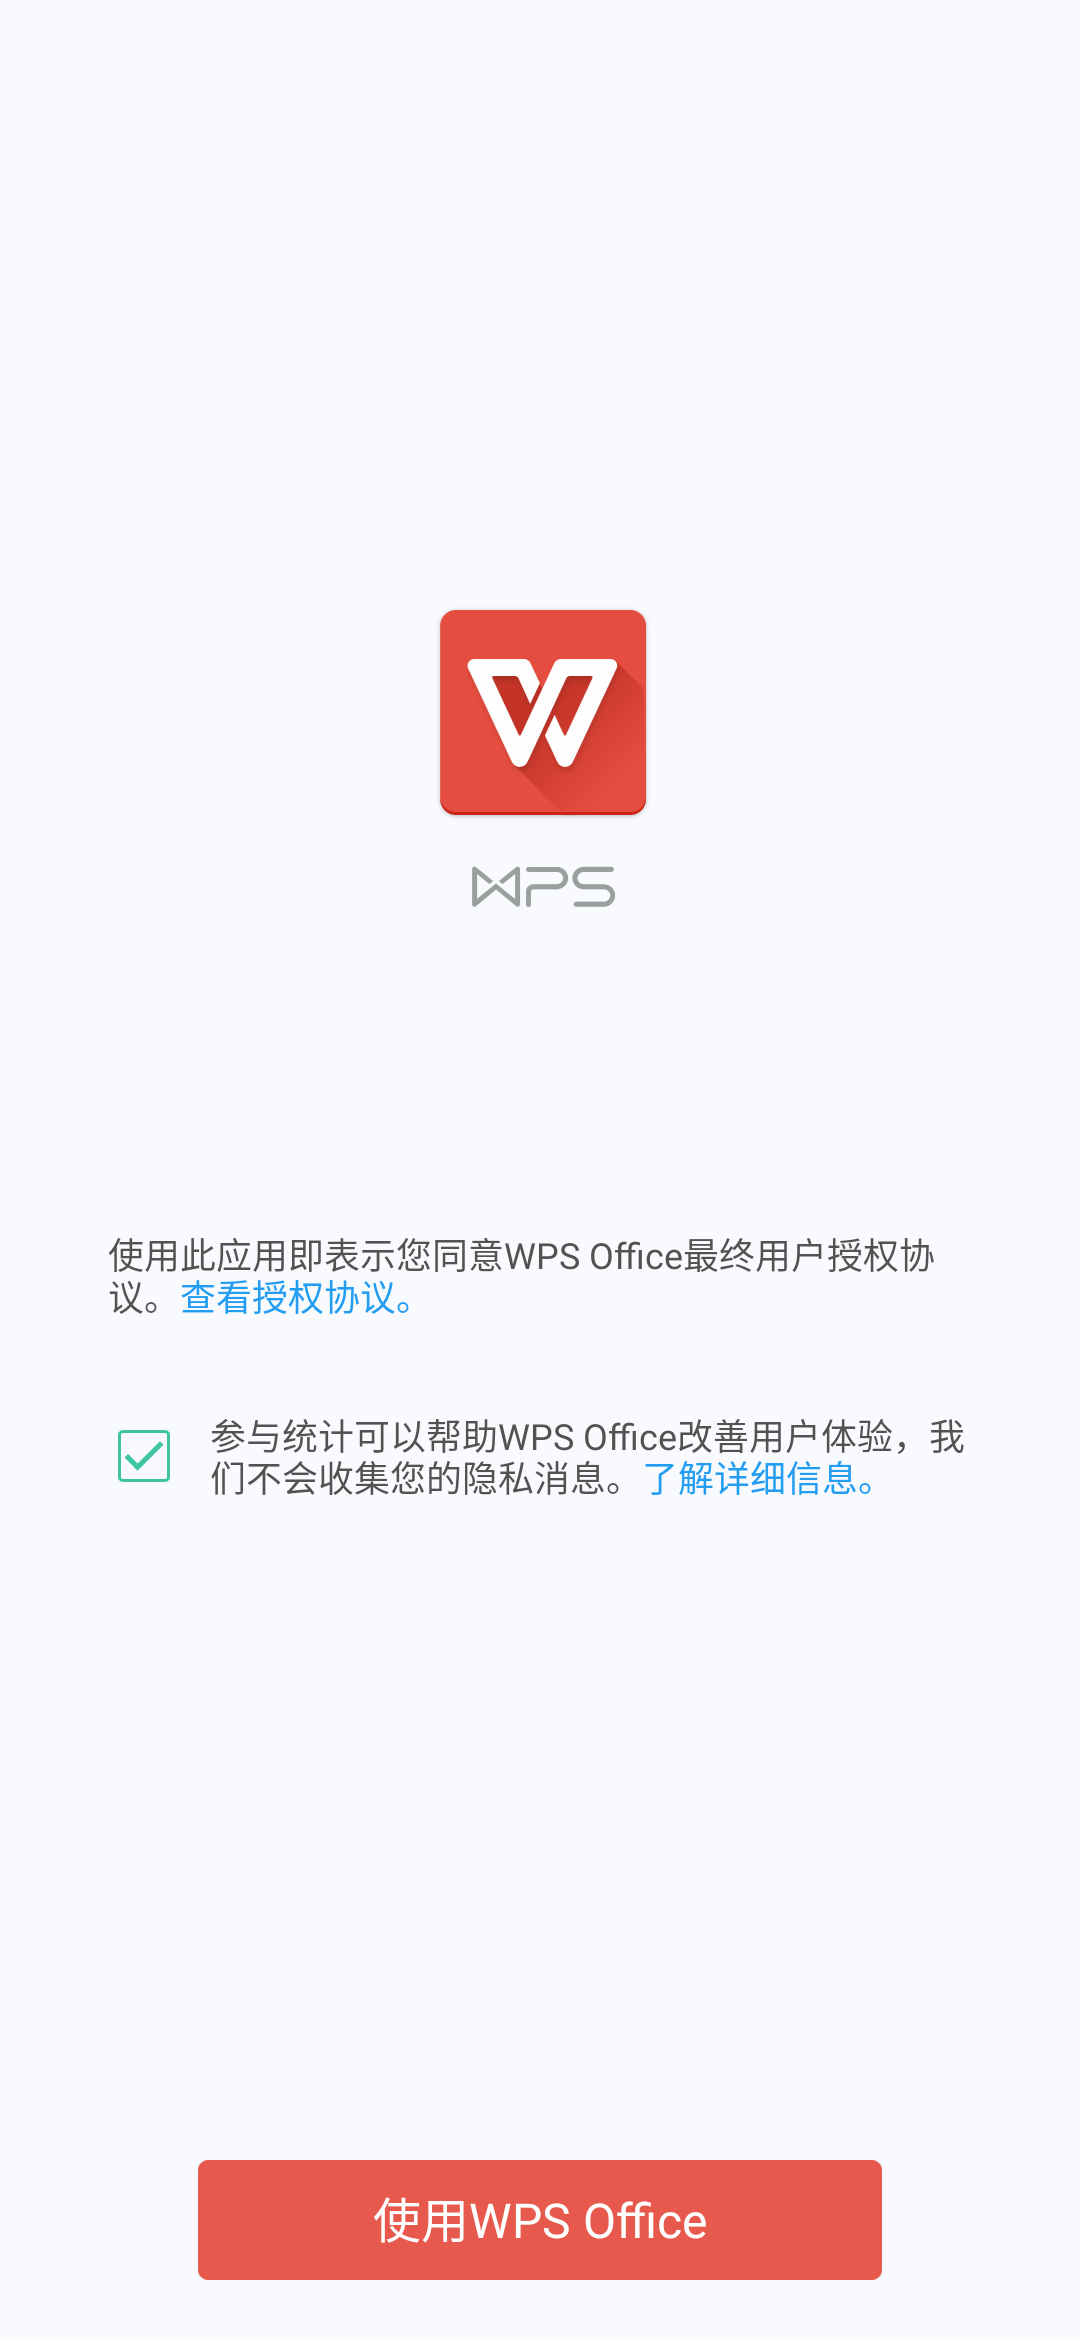 【分享】wps officev10.0.3本地版